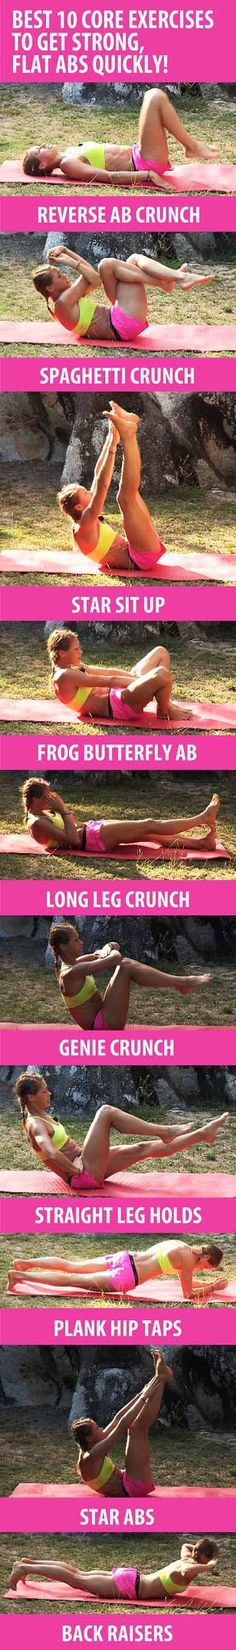 These 10 core exercises will help you sculpt six-pack abs, build core strength, and get rid of belly fat quickly. Recommended reps: BEGINNERS INTERMEDIATE ADVANCED Lose weight while you sleep Great Ab Workouts, Lower Ab Workouts, At Home Workouts, Core Workouts, Belly Fat Workout, Butt Workout, Workout Fitness, Yoga Fitness, Sport Fitness